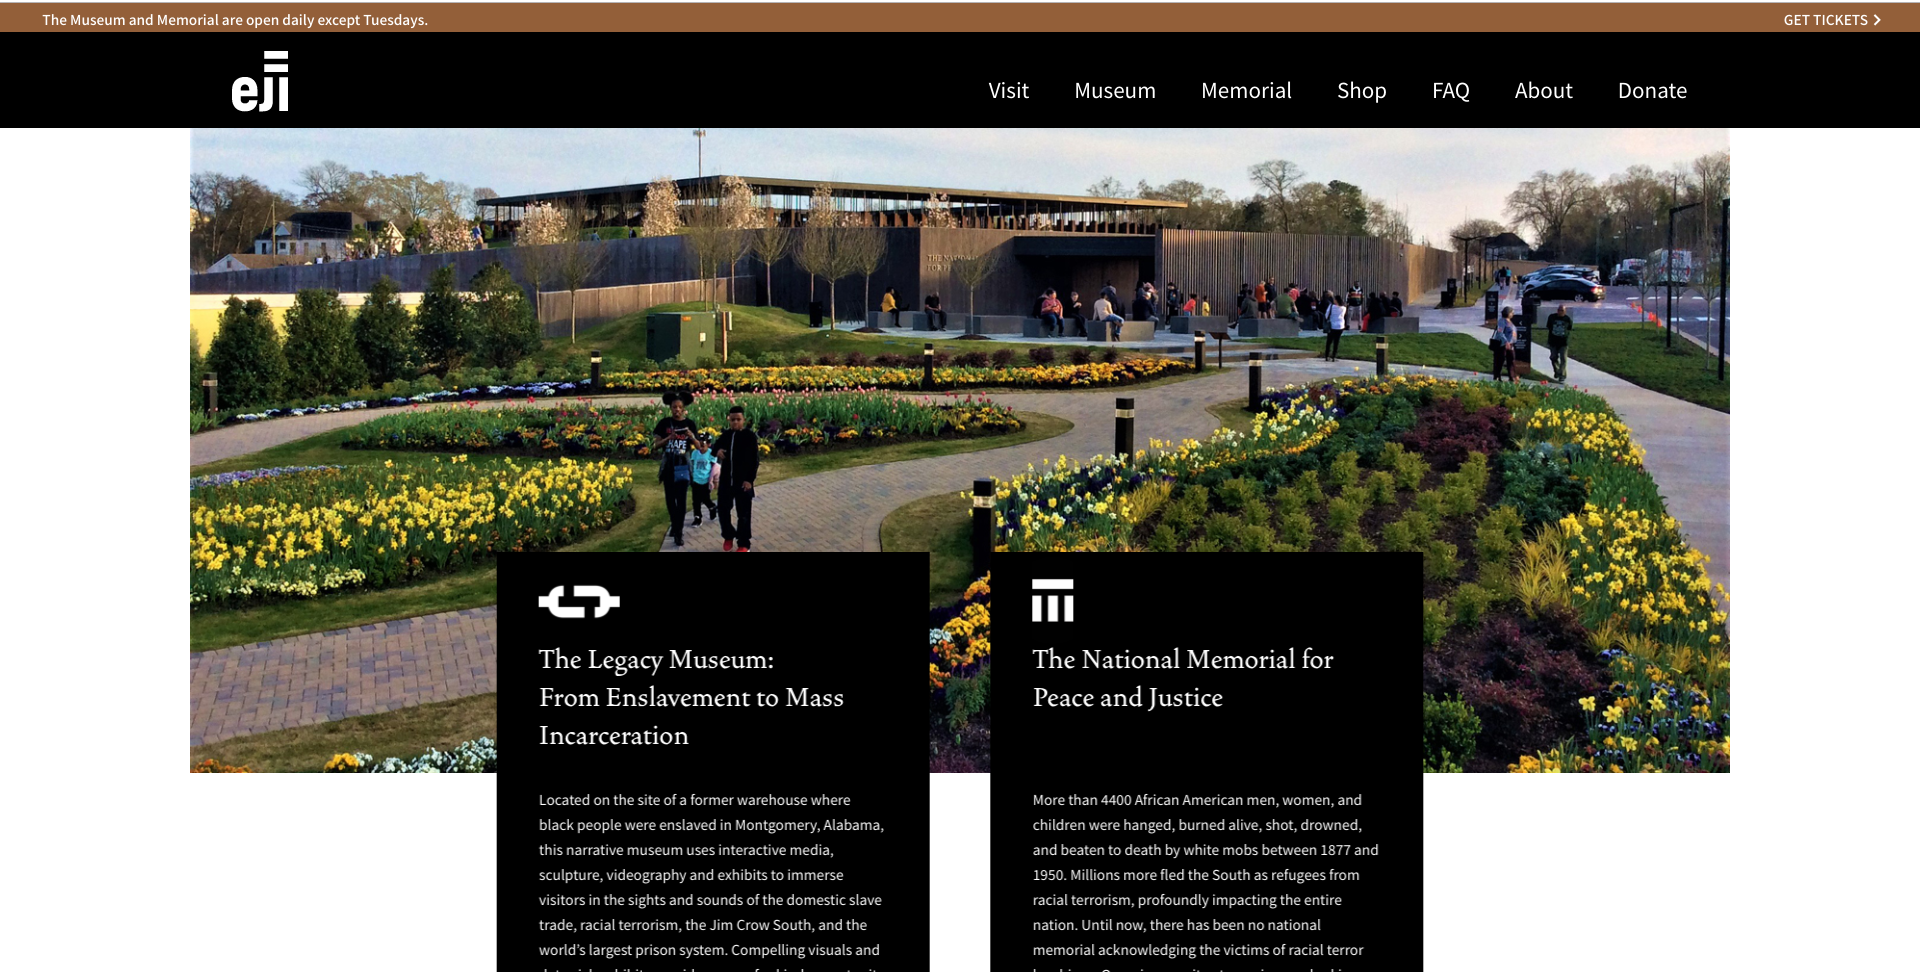 The Legacy Museum & The National Memorial for Peace & Justice